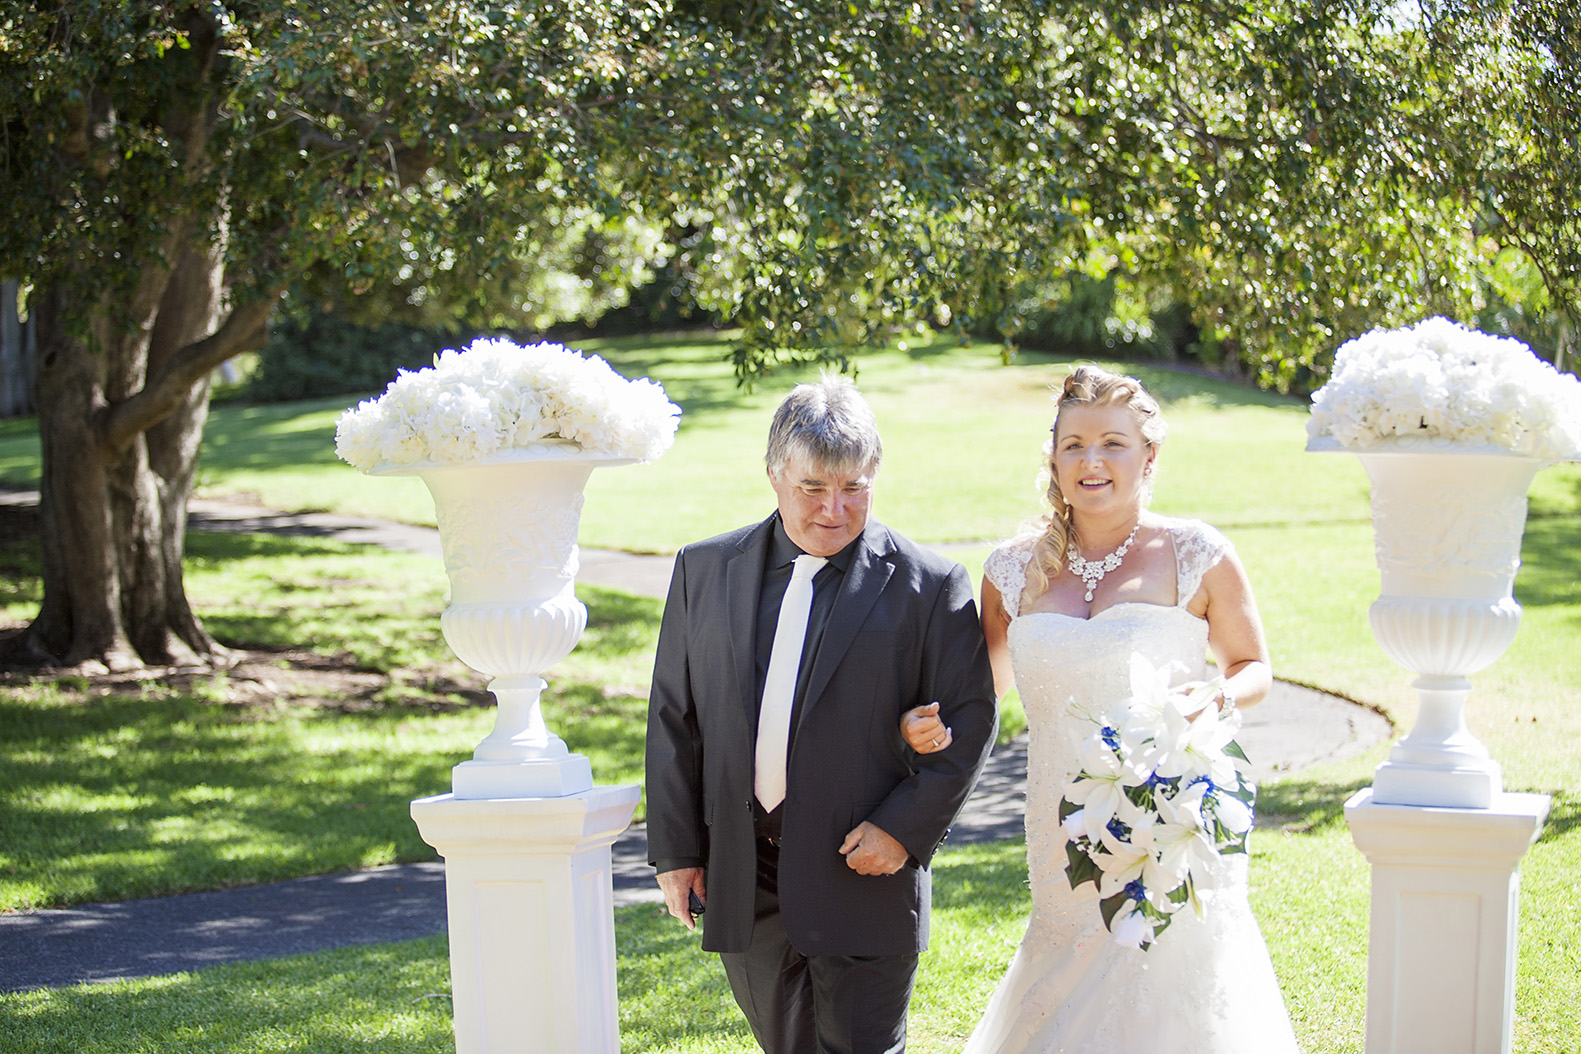 Adelaide Garden Wedding 15.jpg